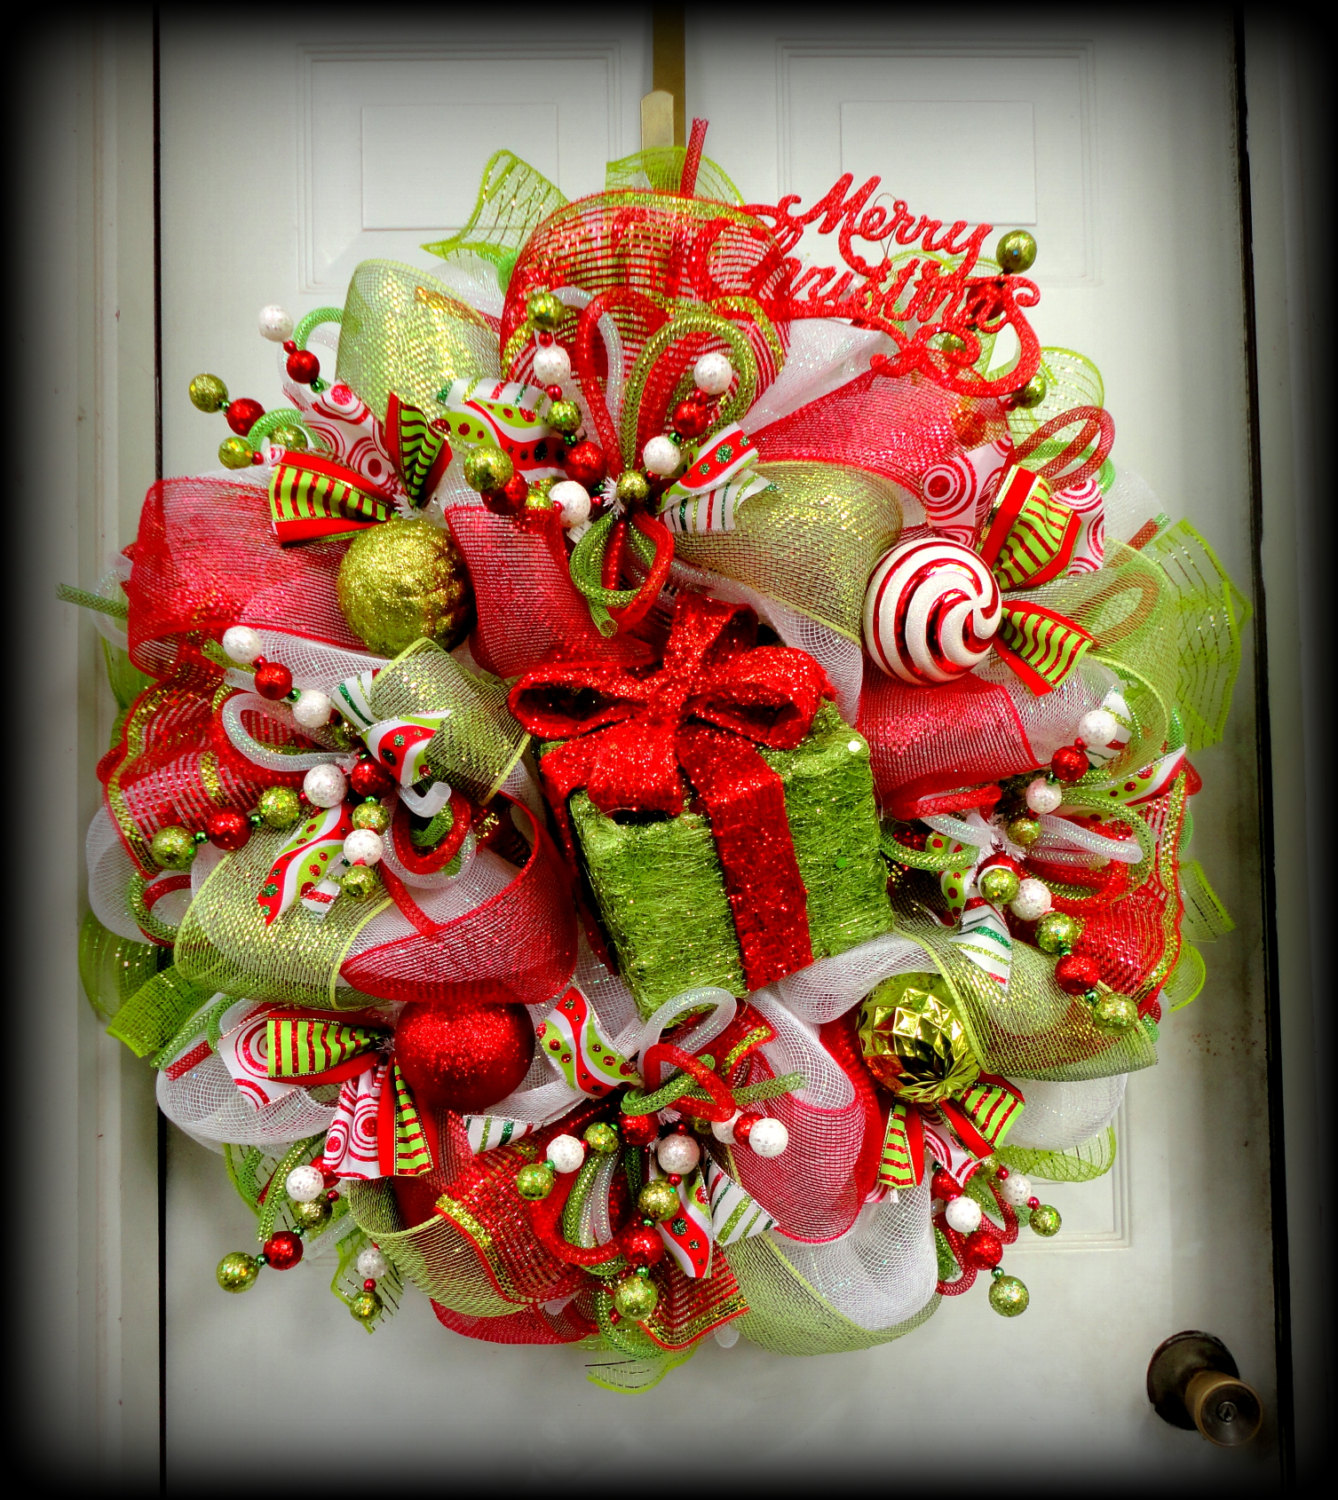 How to make a christmas wreath with mesh - 30 Beautiful And Creative Handmade Christmas Wreaths